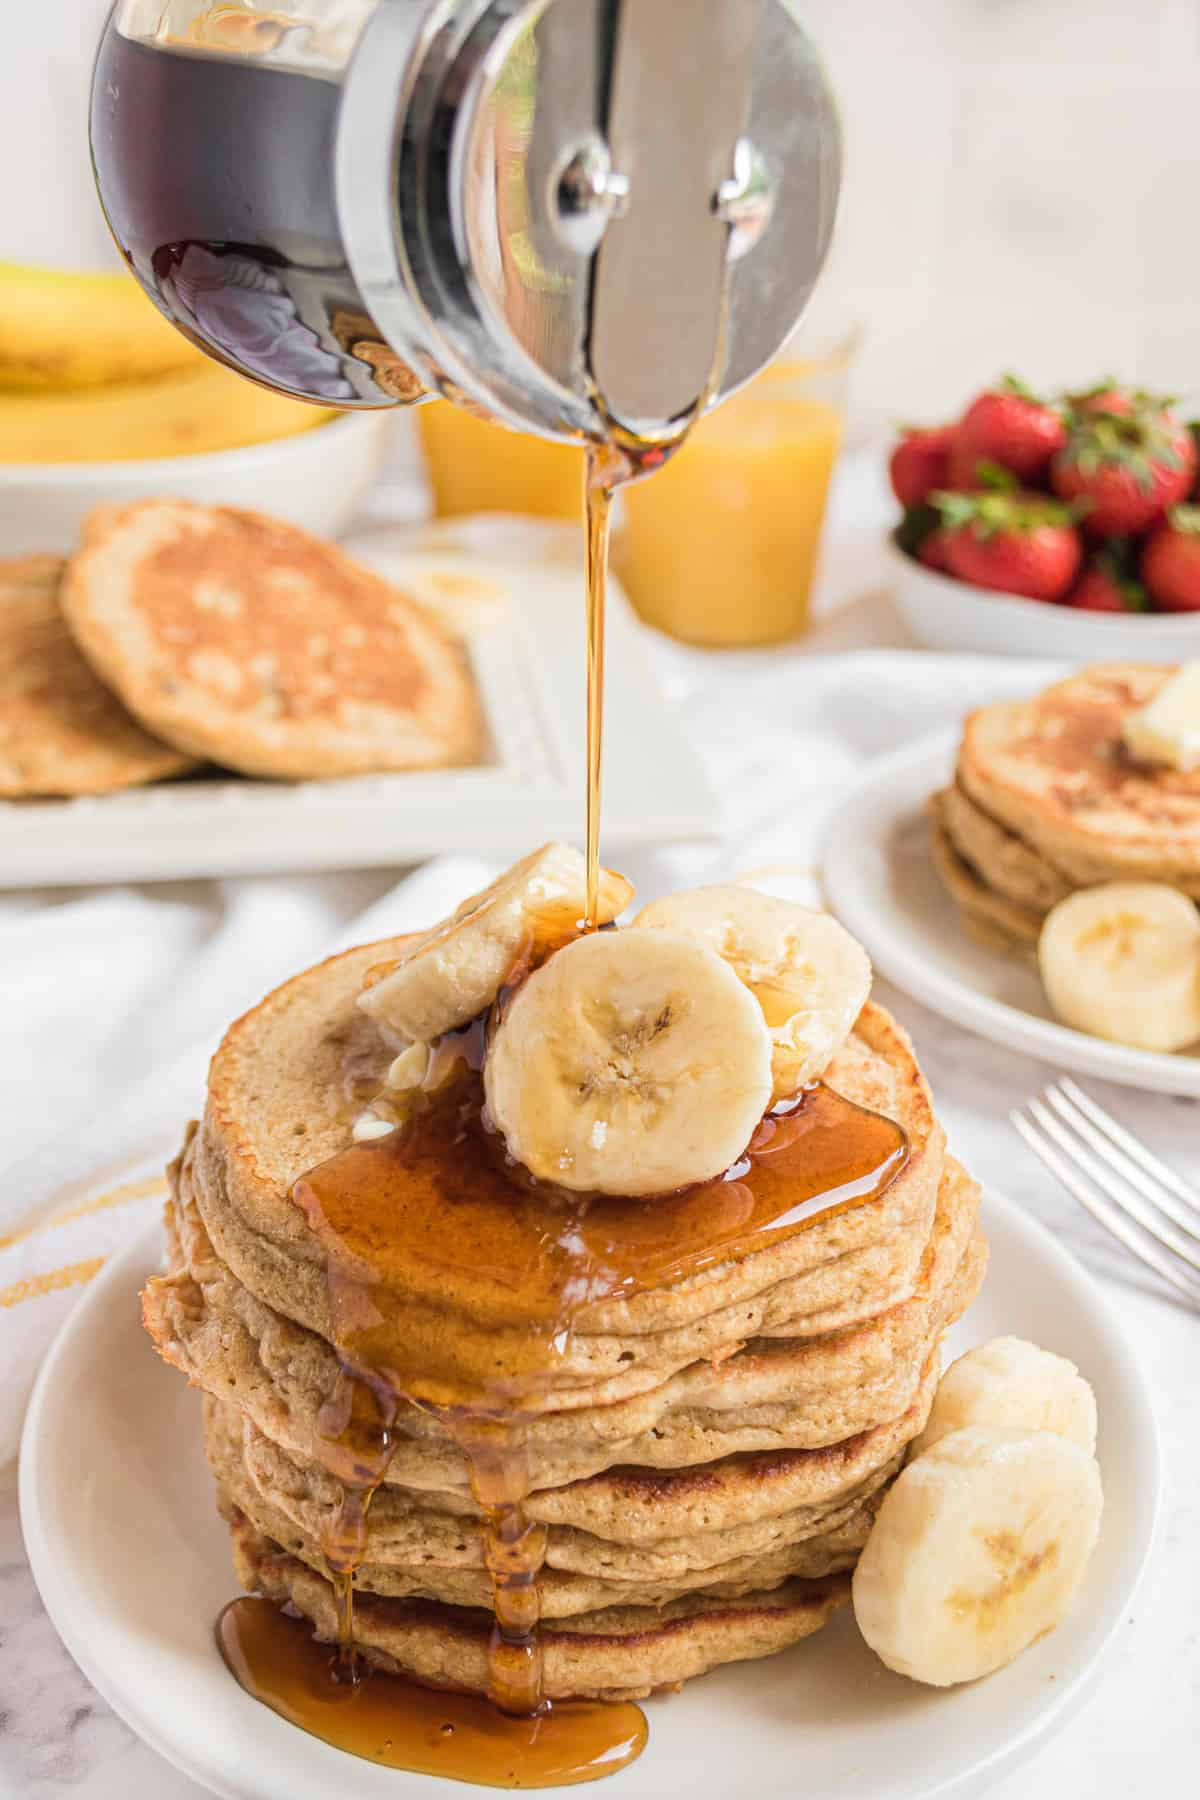 Stack of pancakes with sliced bananas, syrup being poured on top.